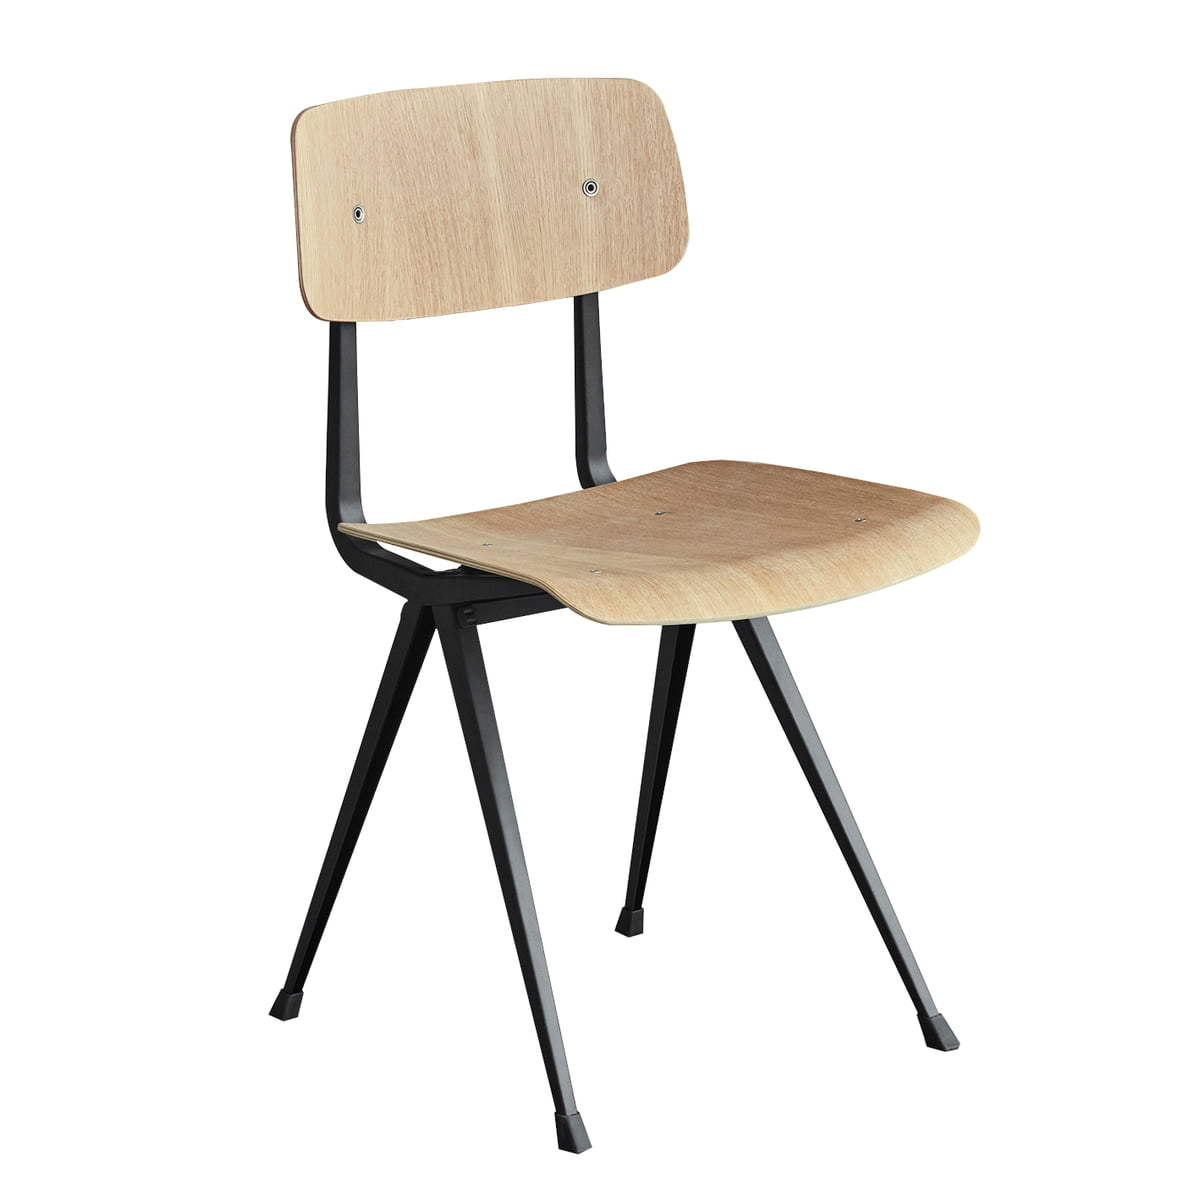 Result Chair By Hay In Beige And Matt Lacquered Oak